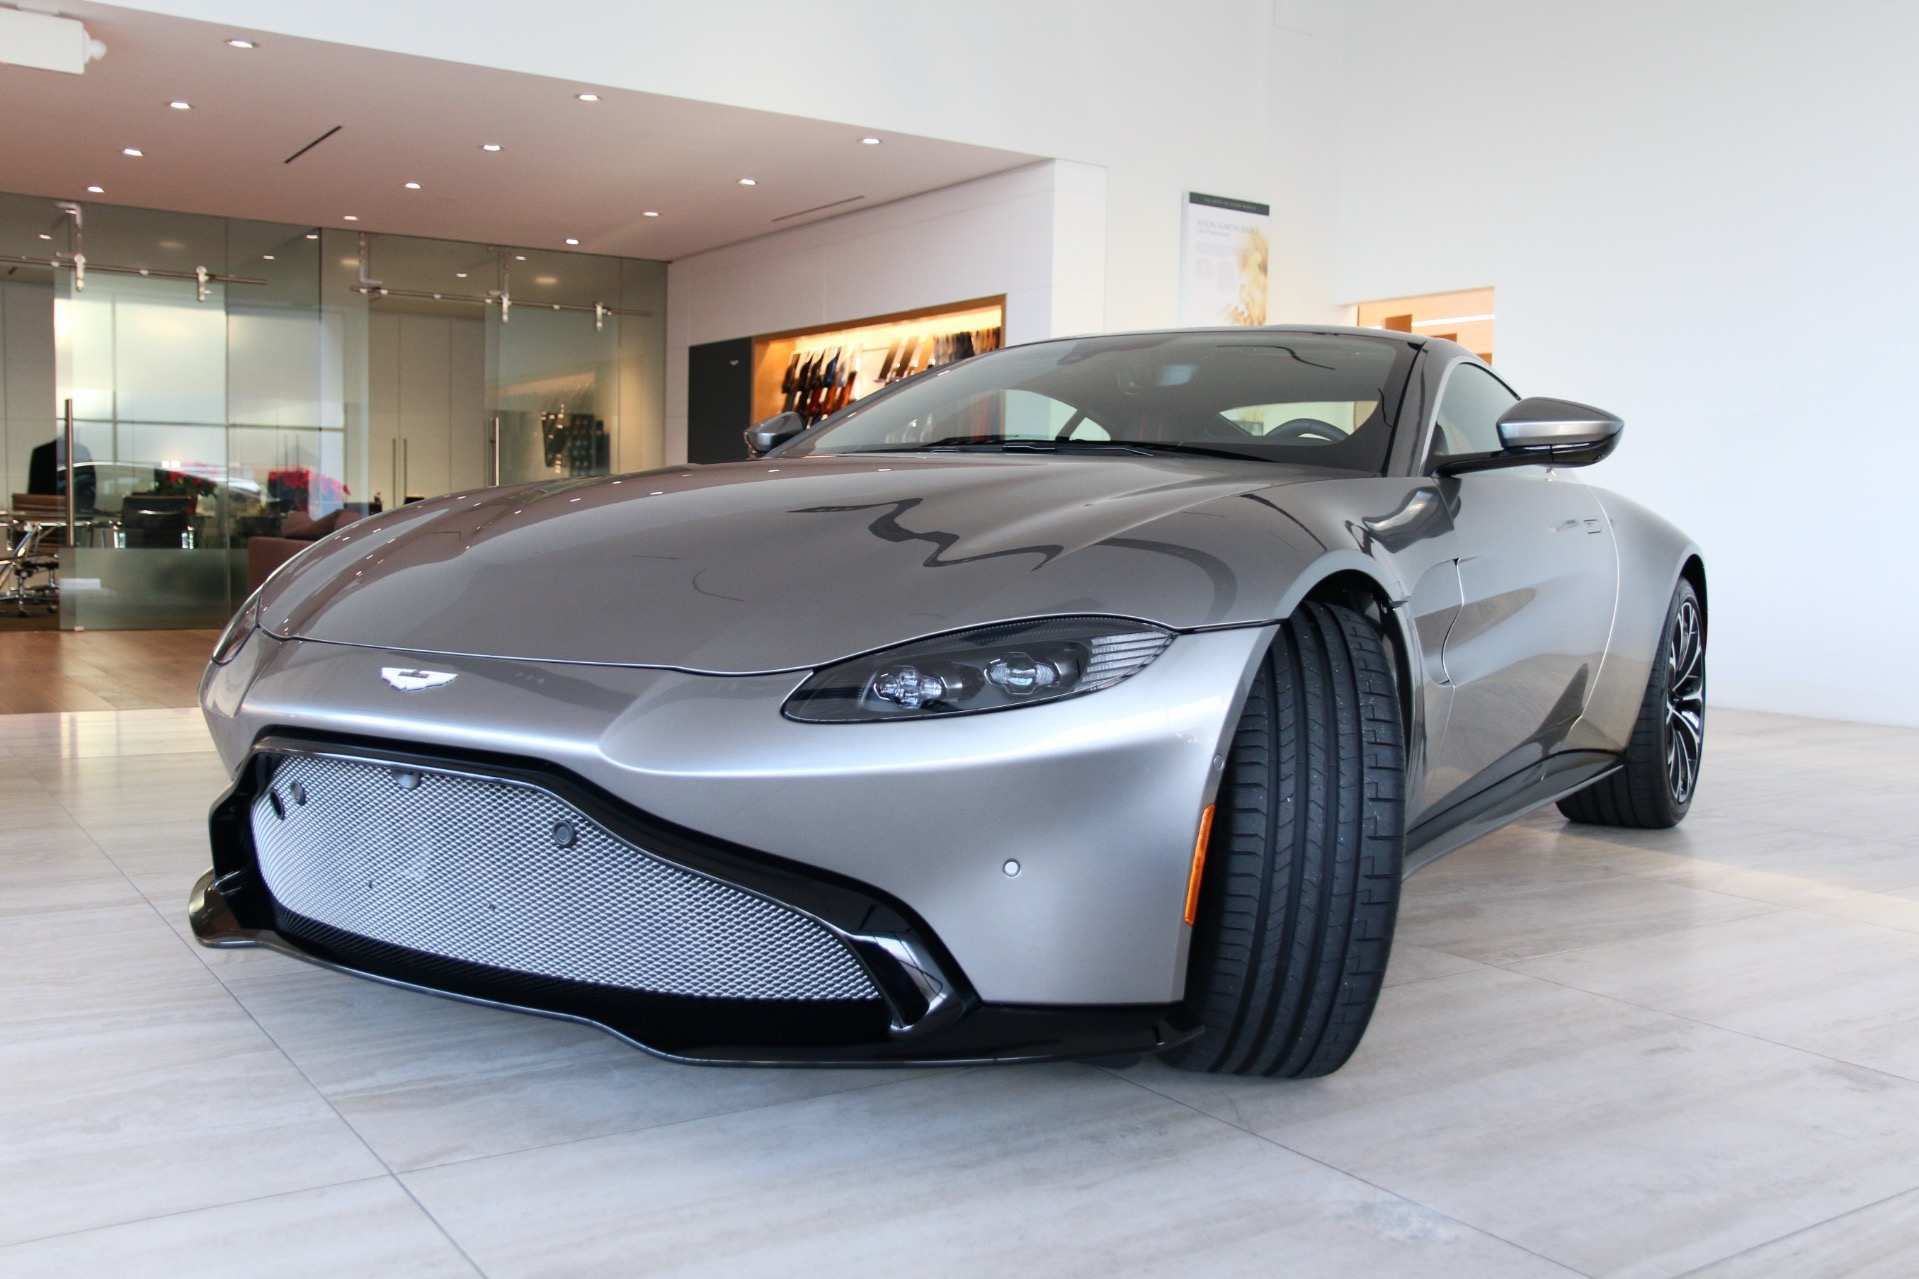 29 Best Review 2019 Aston Martin Vantage For Sale Model with 2019 Aston Martin Vantage For Sale